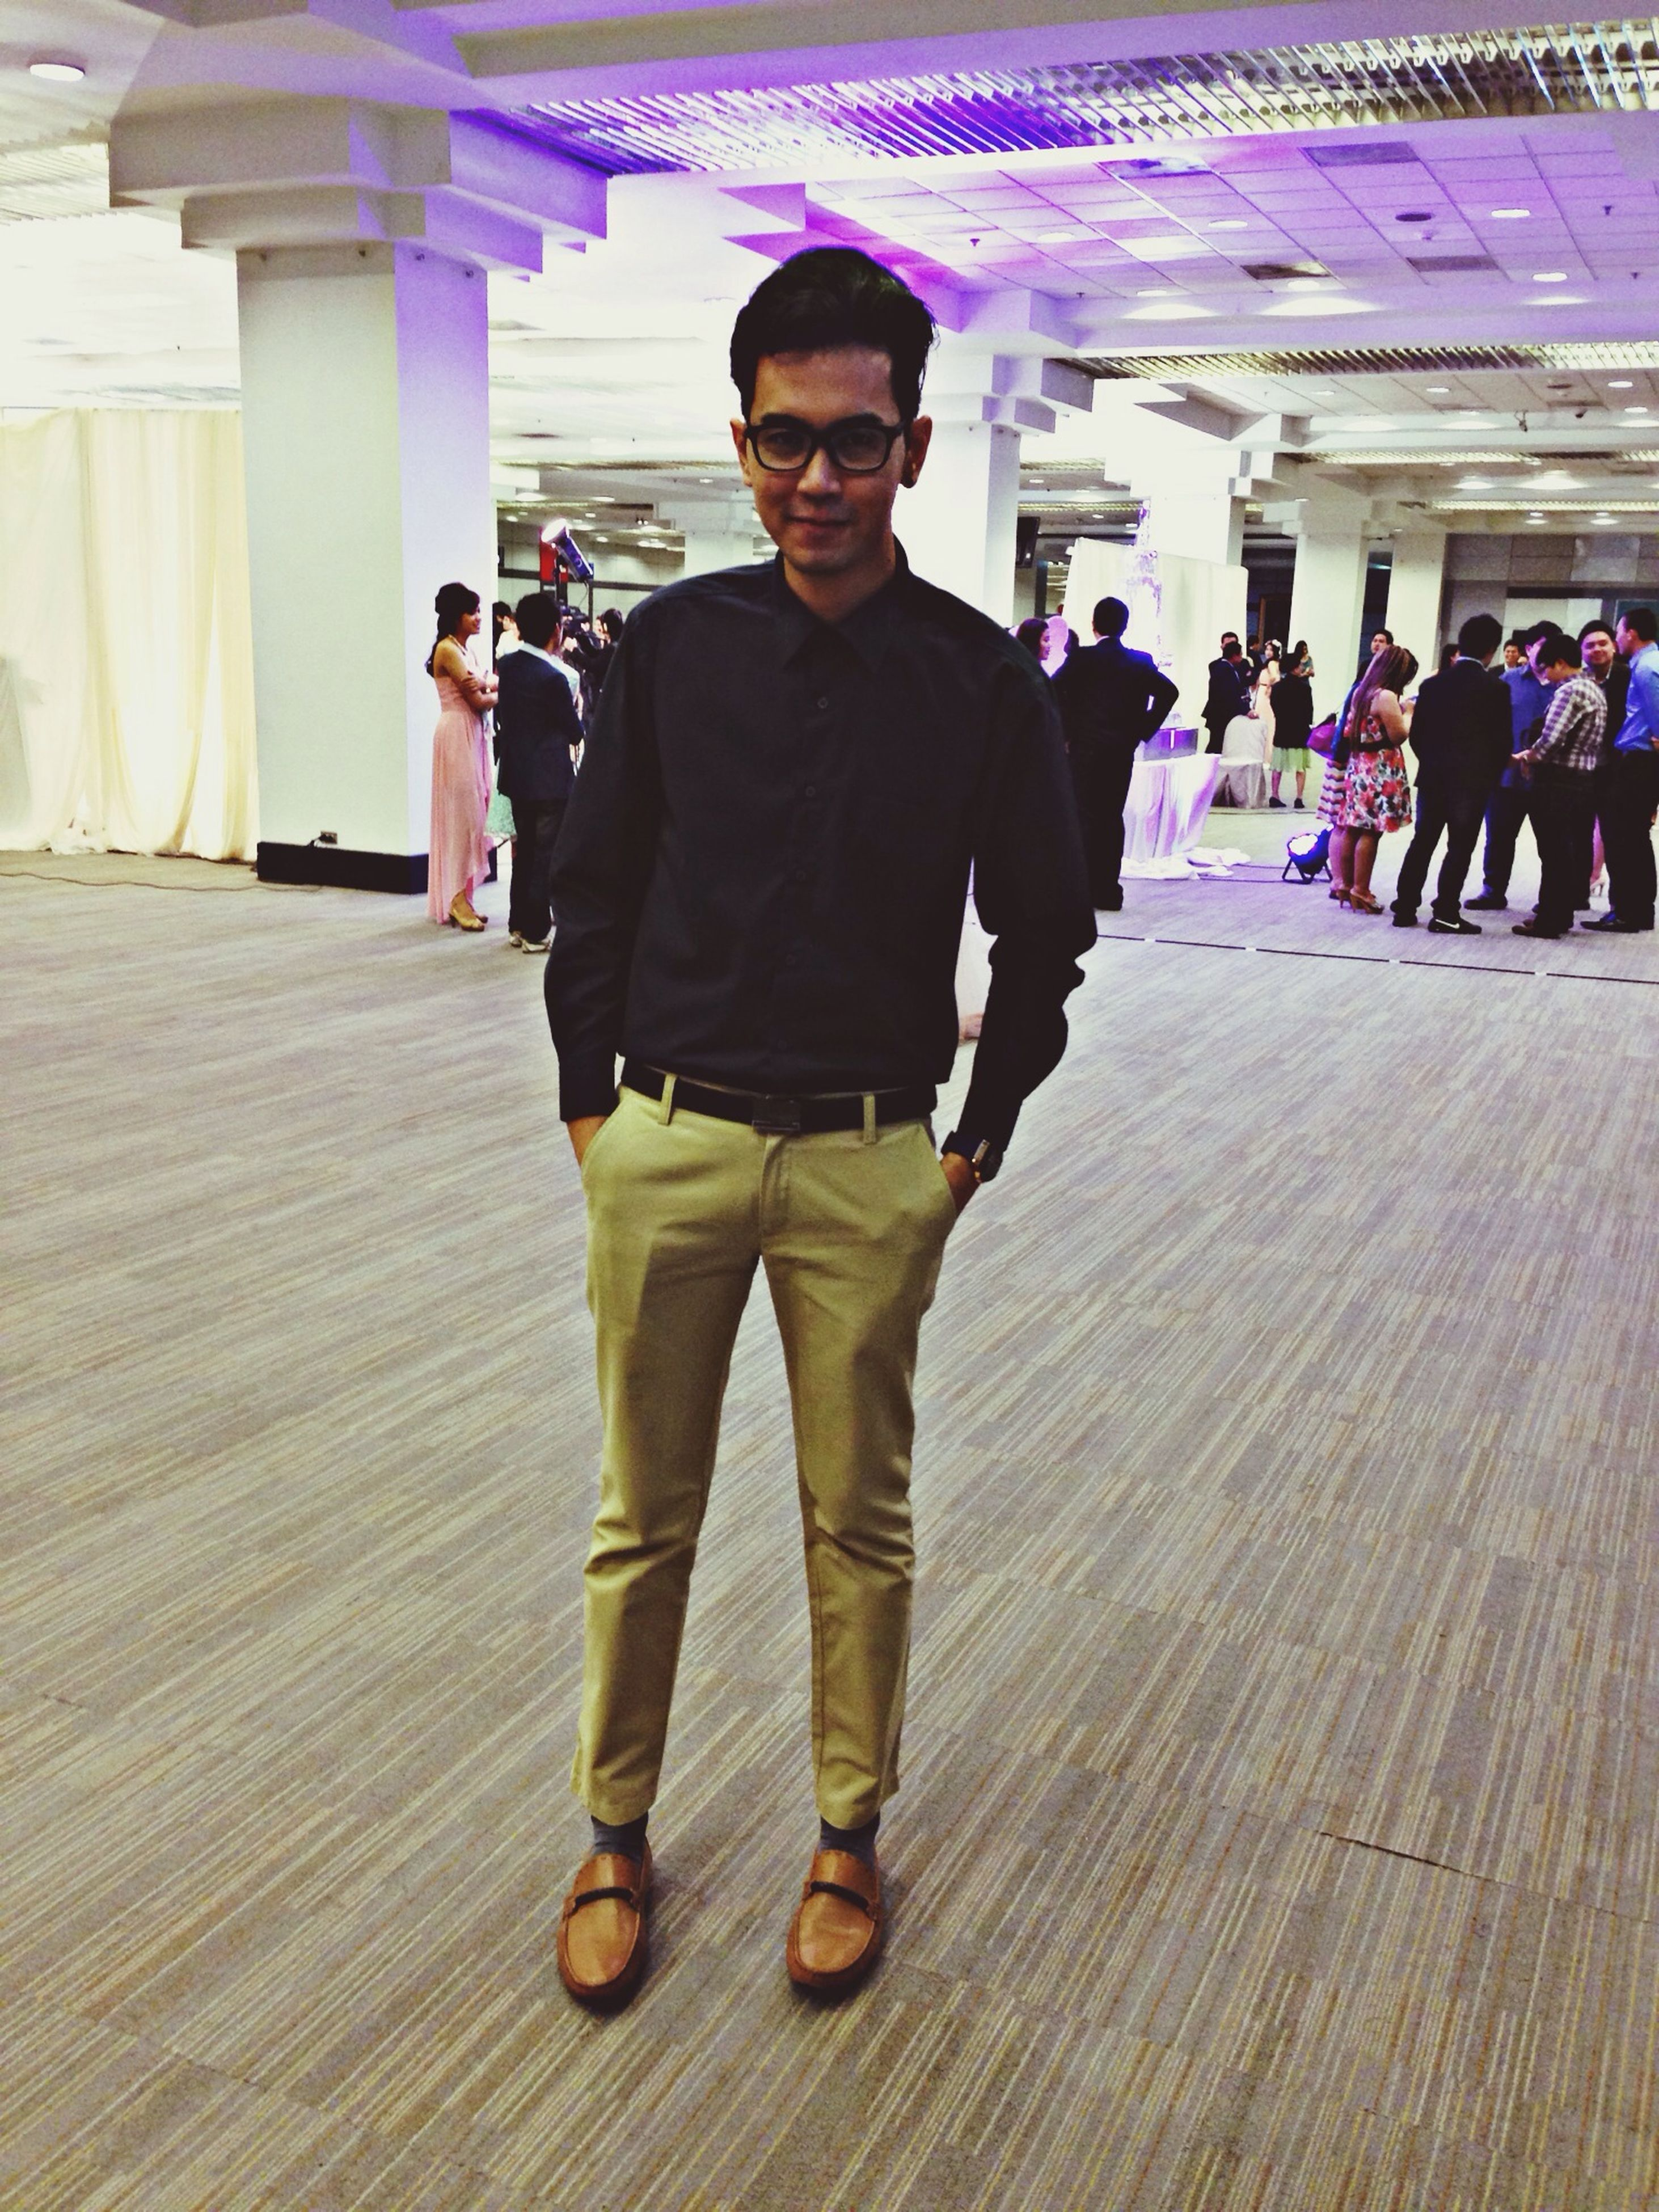 lifestyles, casual clothing, young adult, indoors, leisure activity, standing, front view, looking at camera, portrait, person, built structure, architecture, full length, young men, sunglasses, incidental people